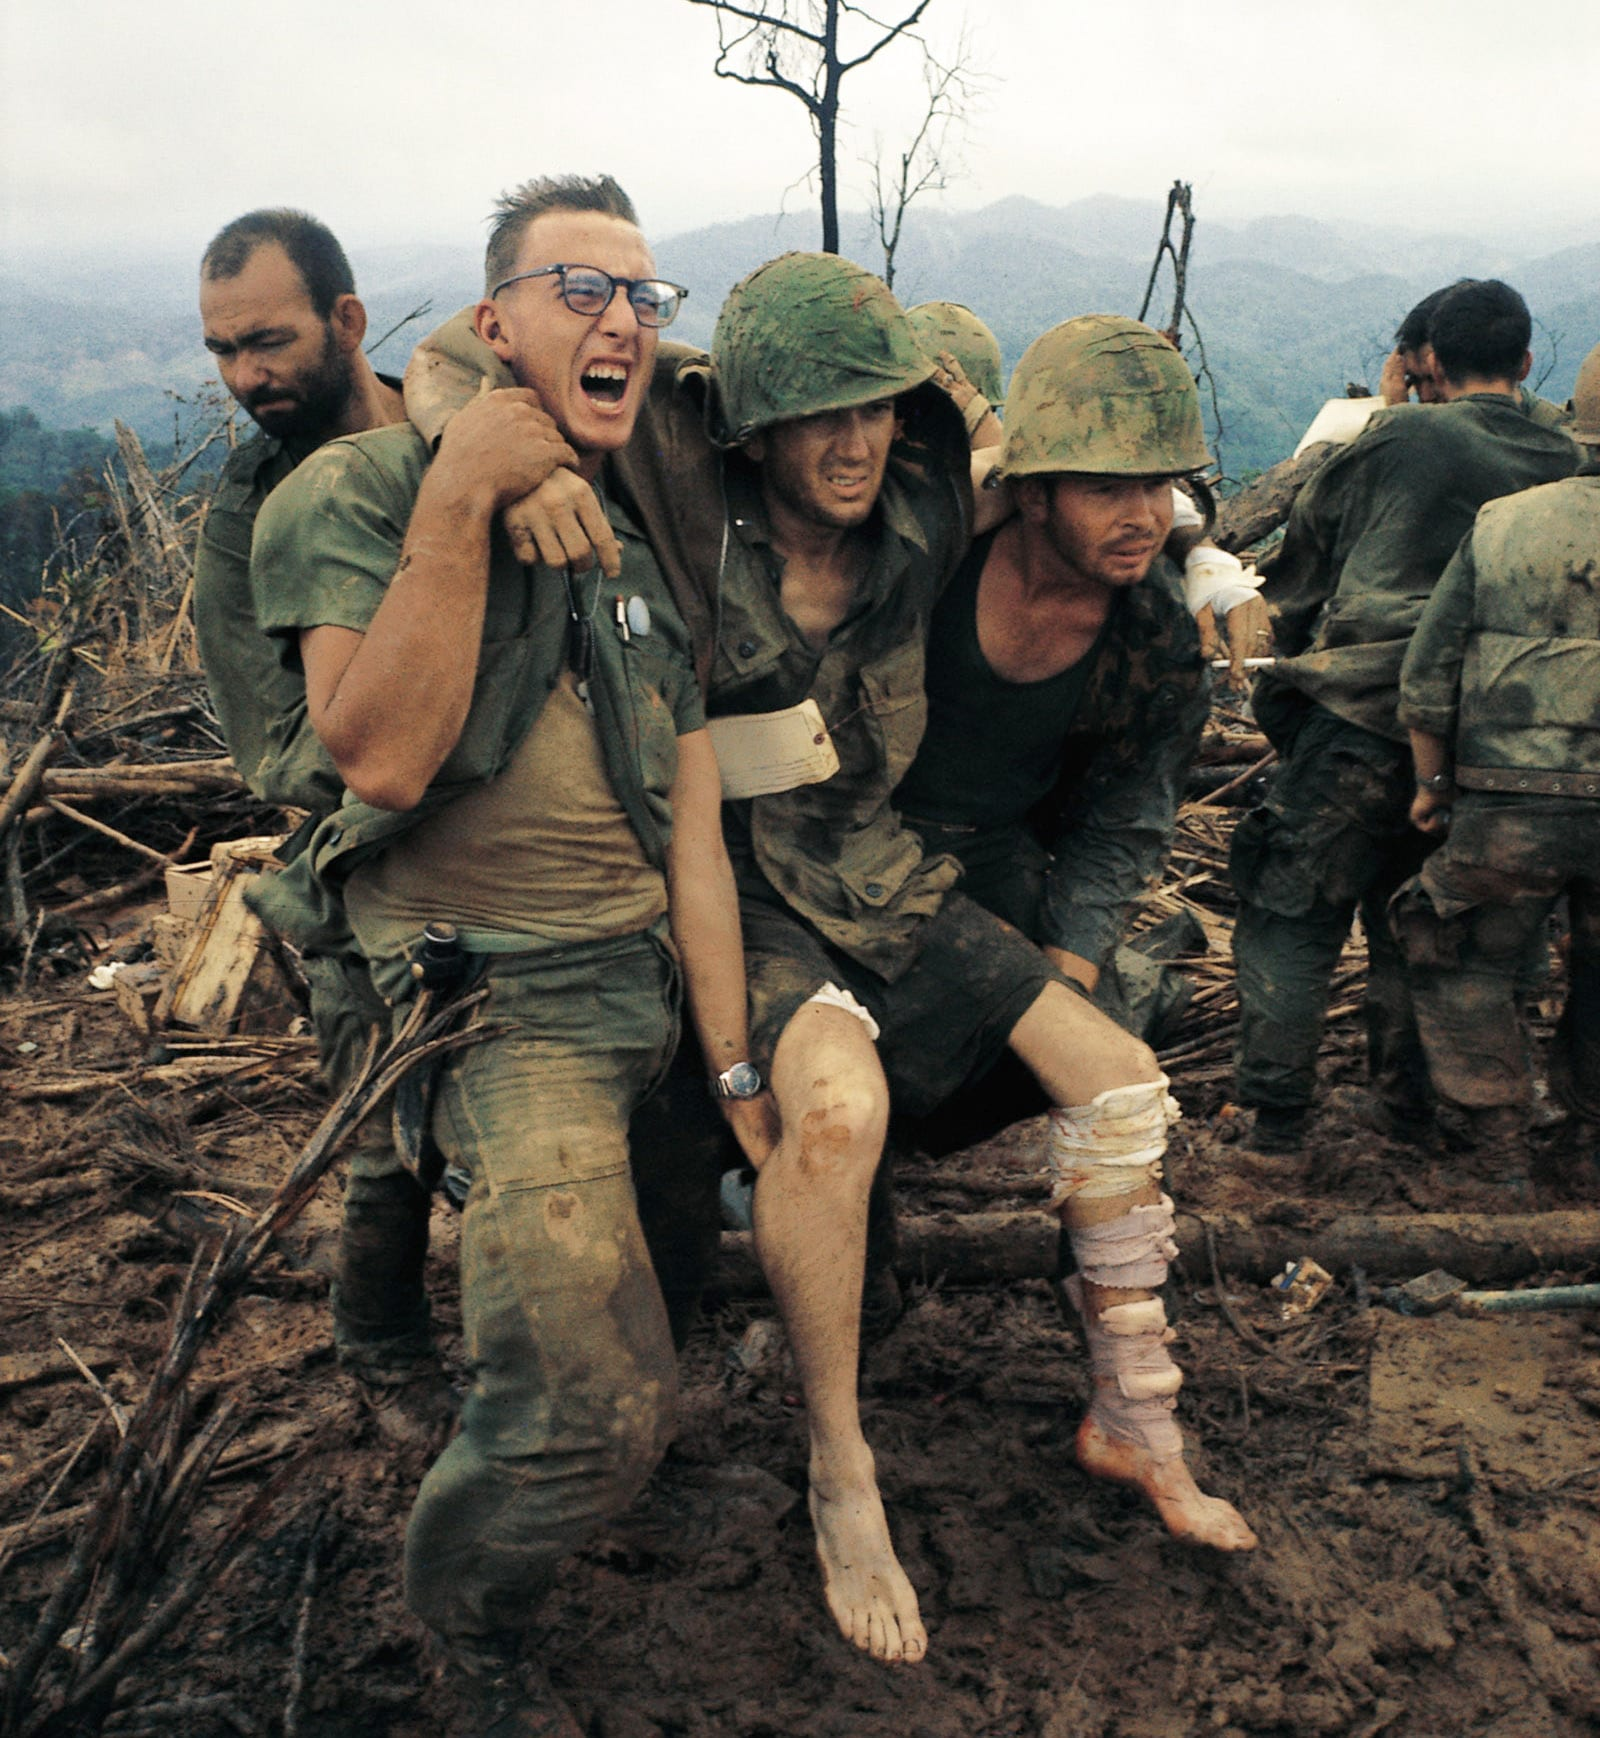 Image [US Marines with an injured comrade at a first-aid station, Mutter's Ridge, Nui Cay Tri, South Vietnam, October 1966][Photo: Larry Burrows]